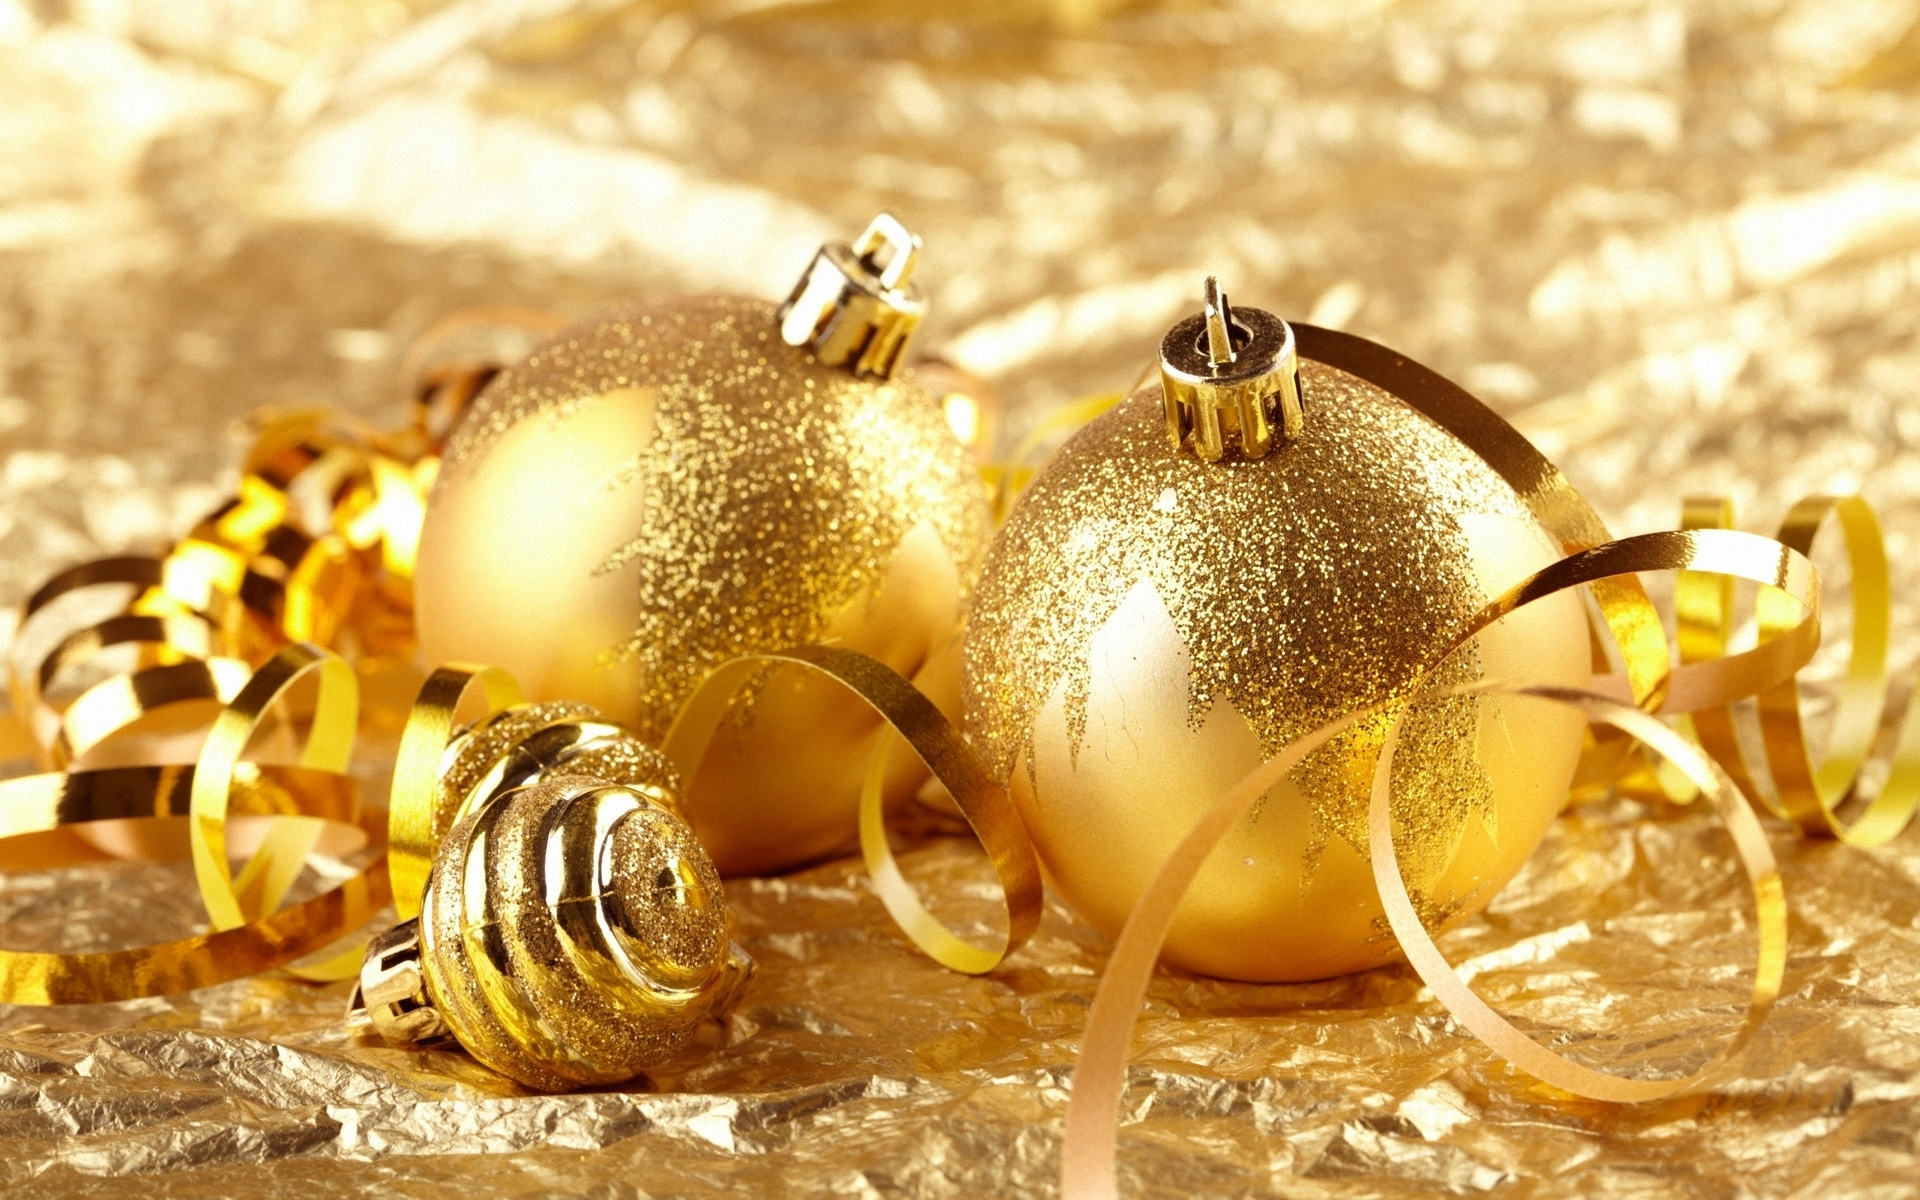 Christmas Ornaments Wallpaper 38751 1920x1200 px ~ HDWallSource.com